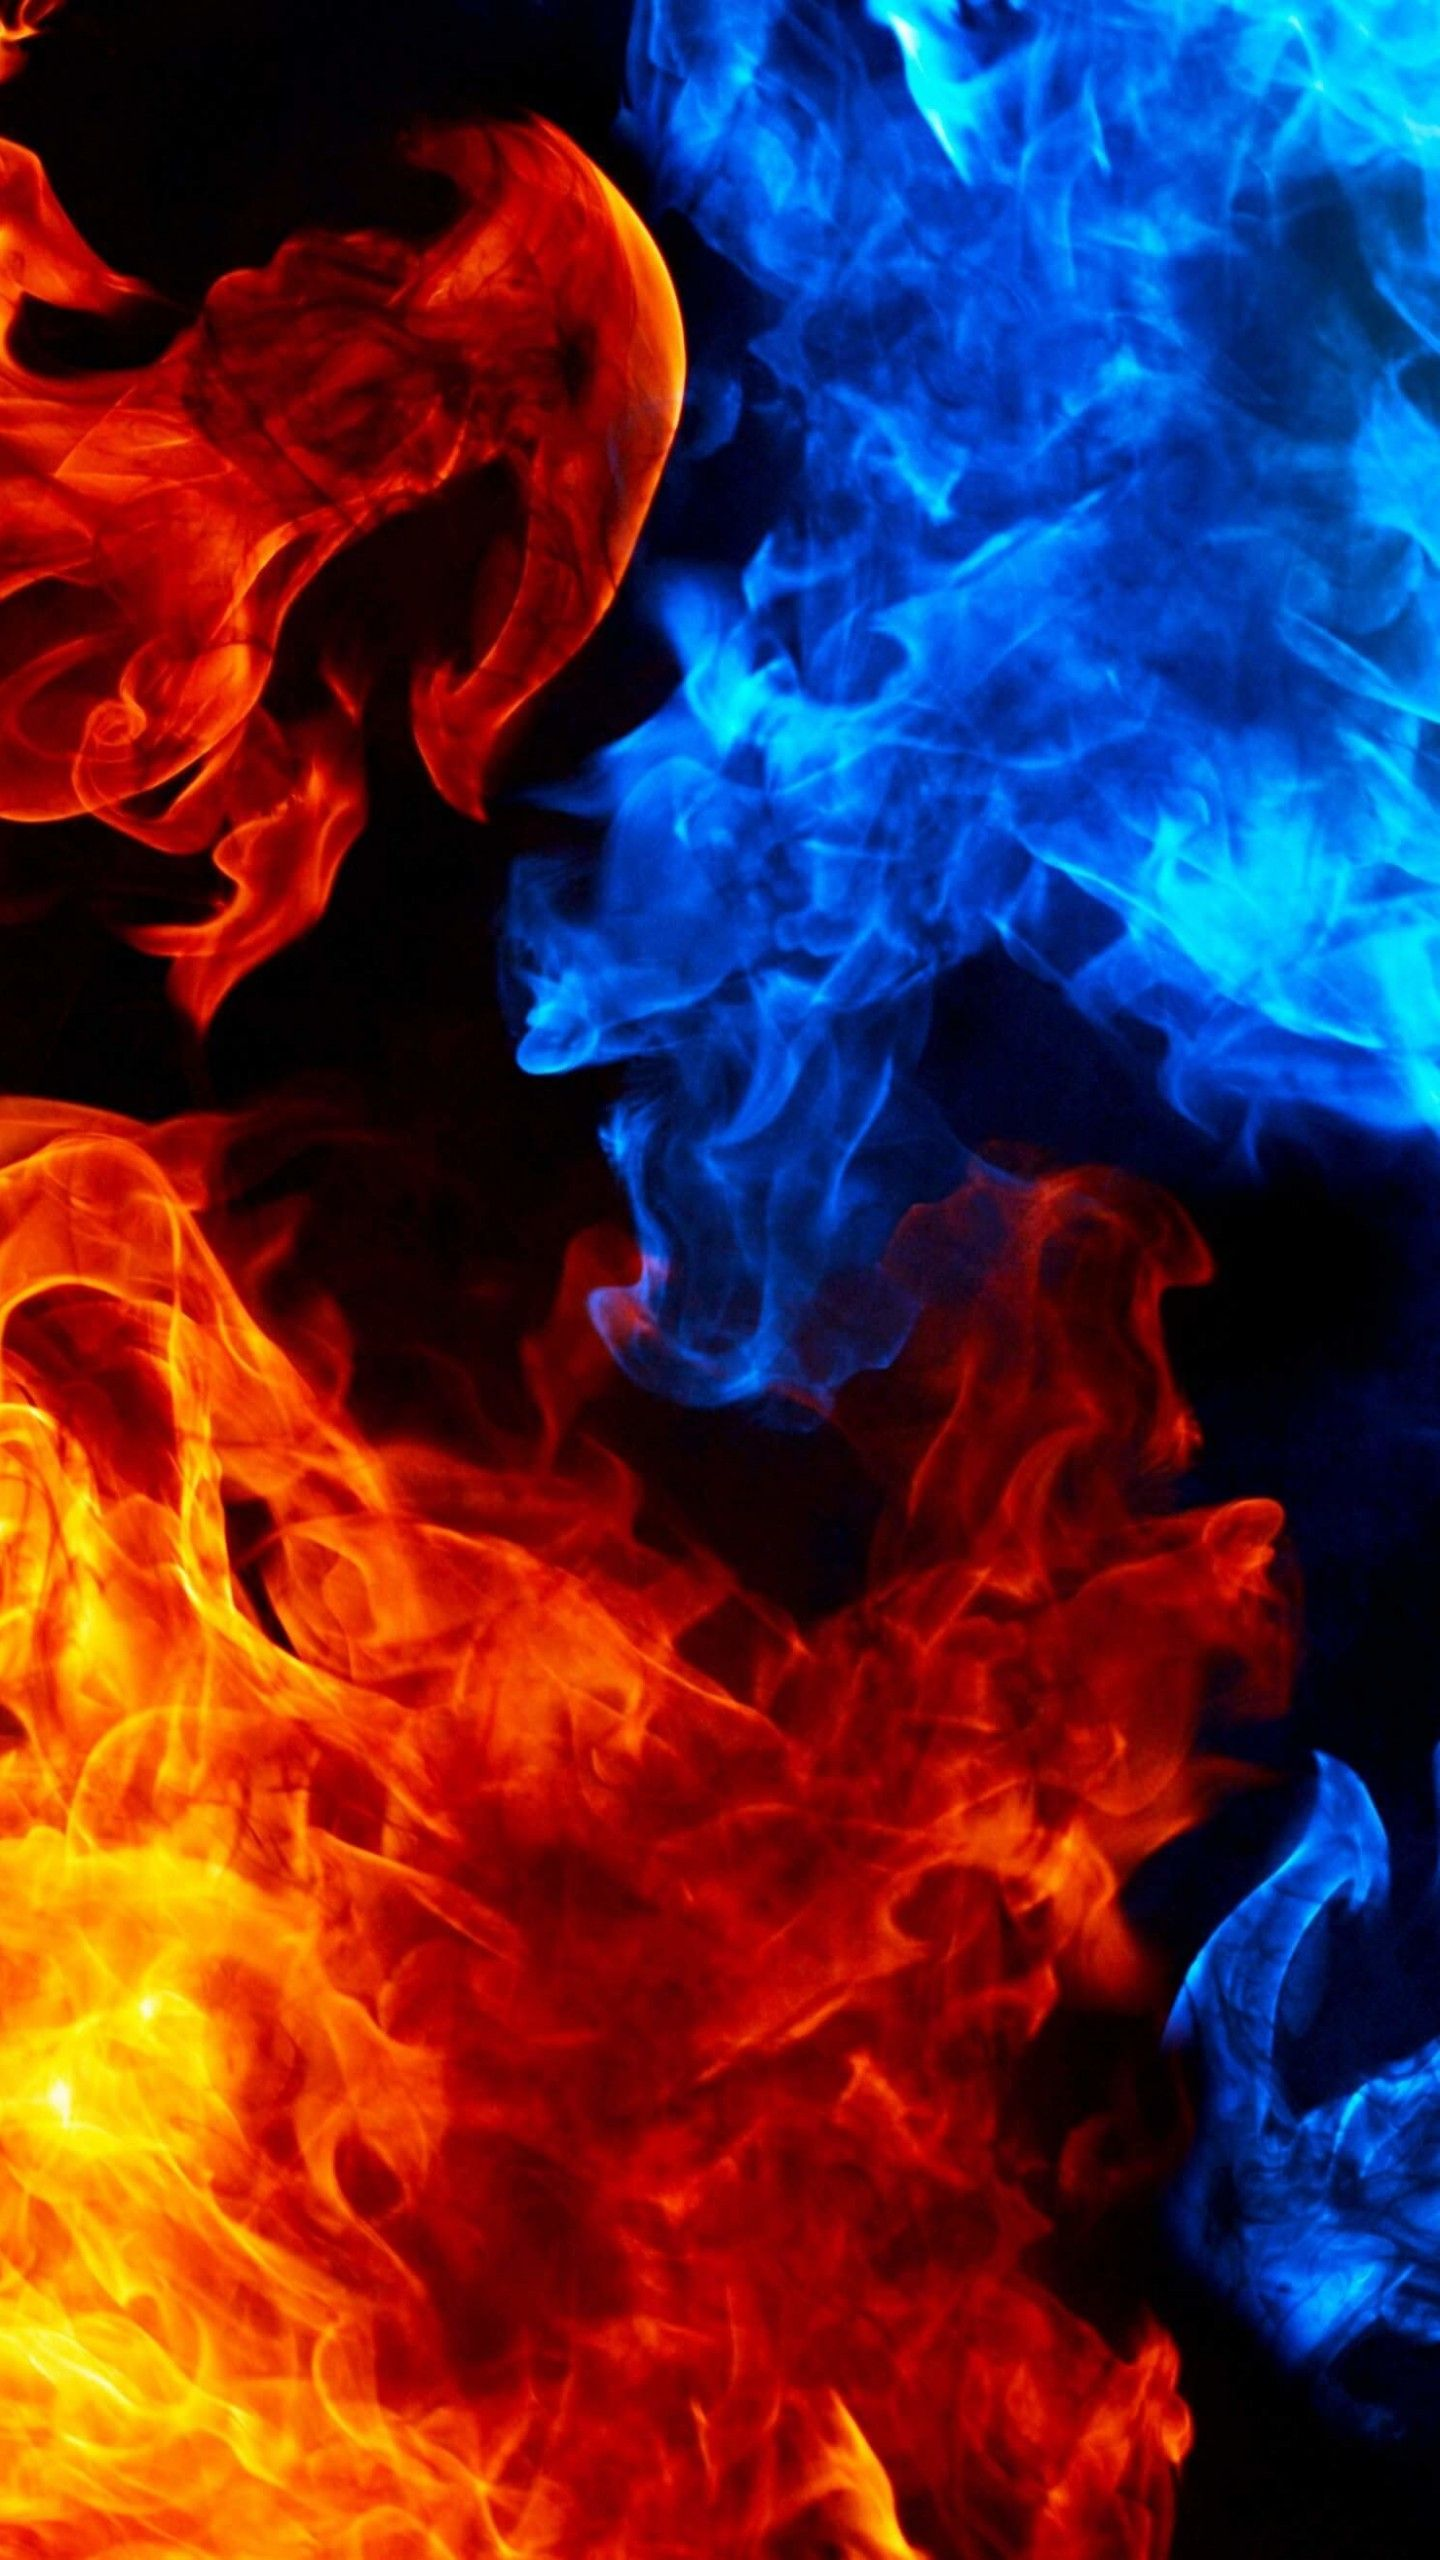 Red And Blue Fire Wallpaper Red And Black Wallpaper Red Wallpaper Blue Wallpapers